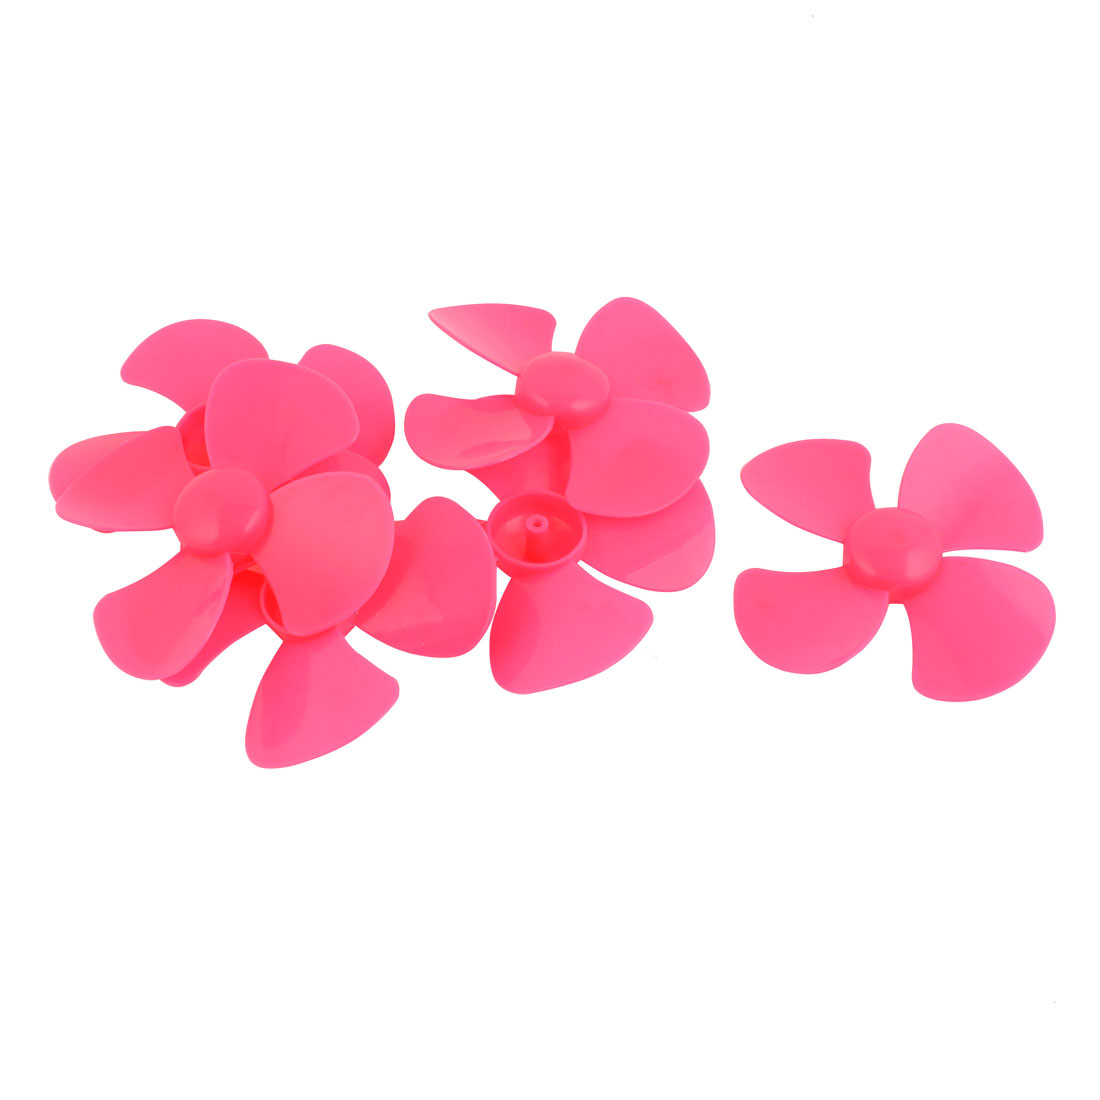 6Pcs Fan Shape 4 Vanes 100mm Dia RC Boat Propeller Paddle Pink for Brushless Motor